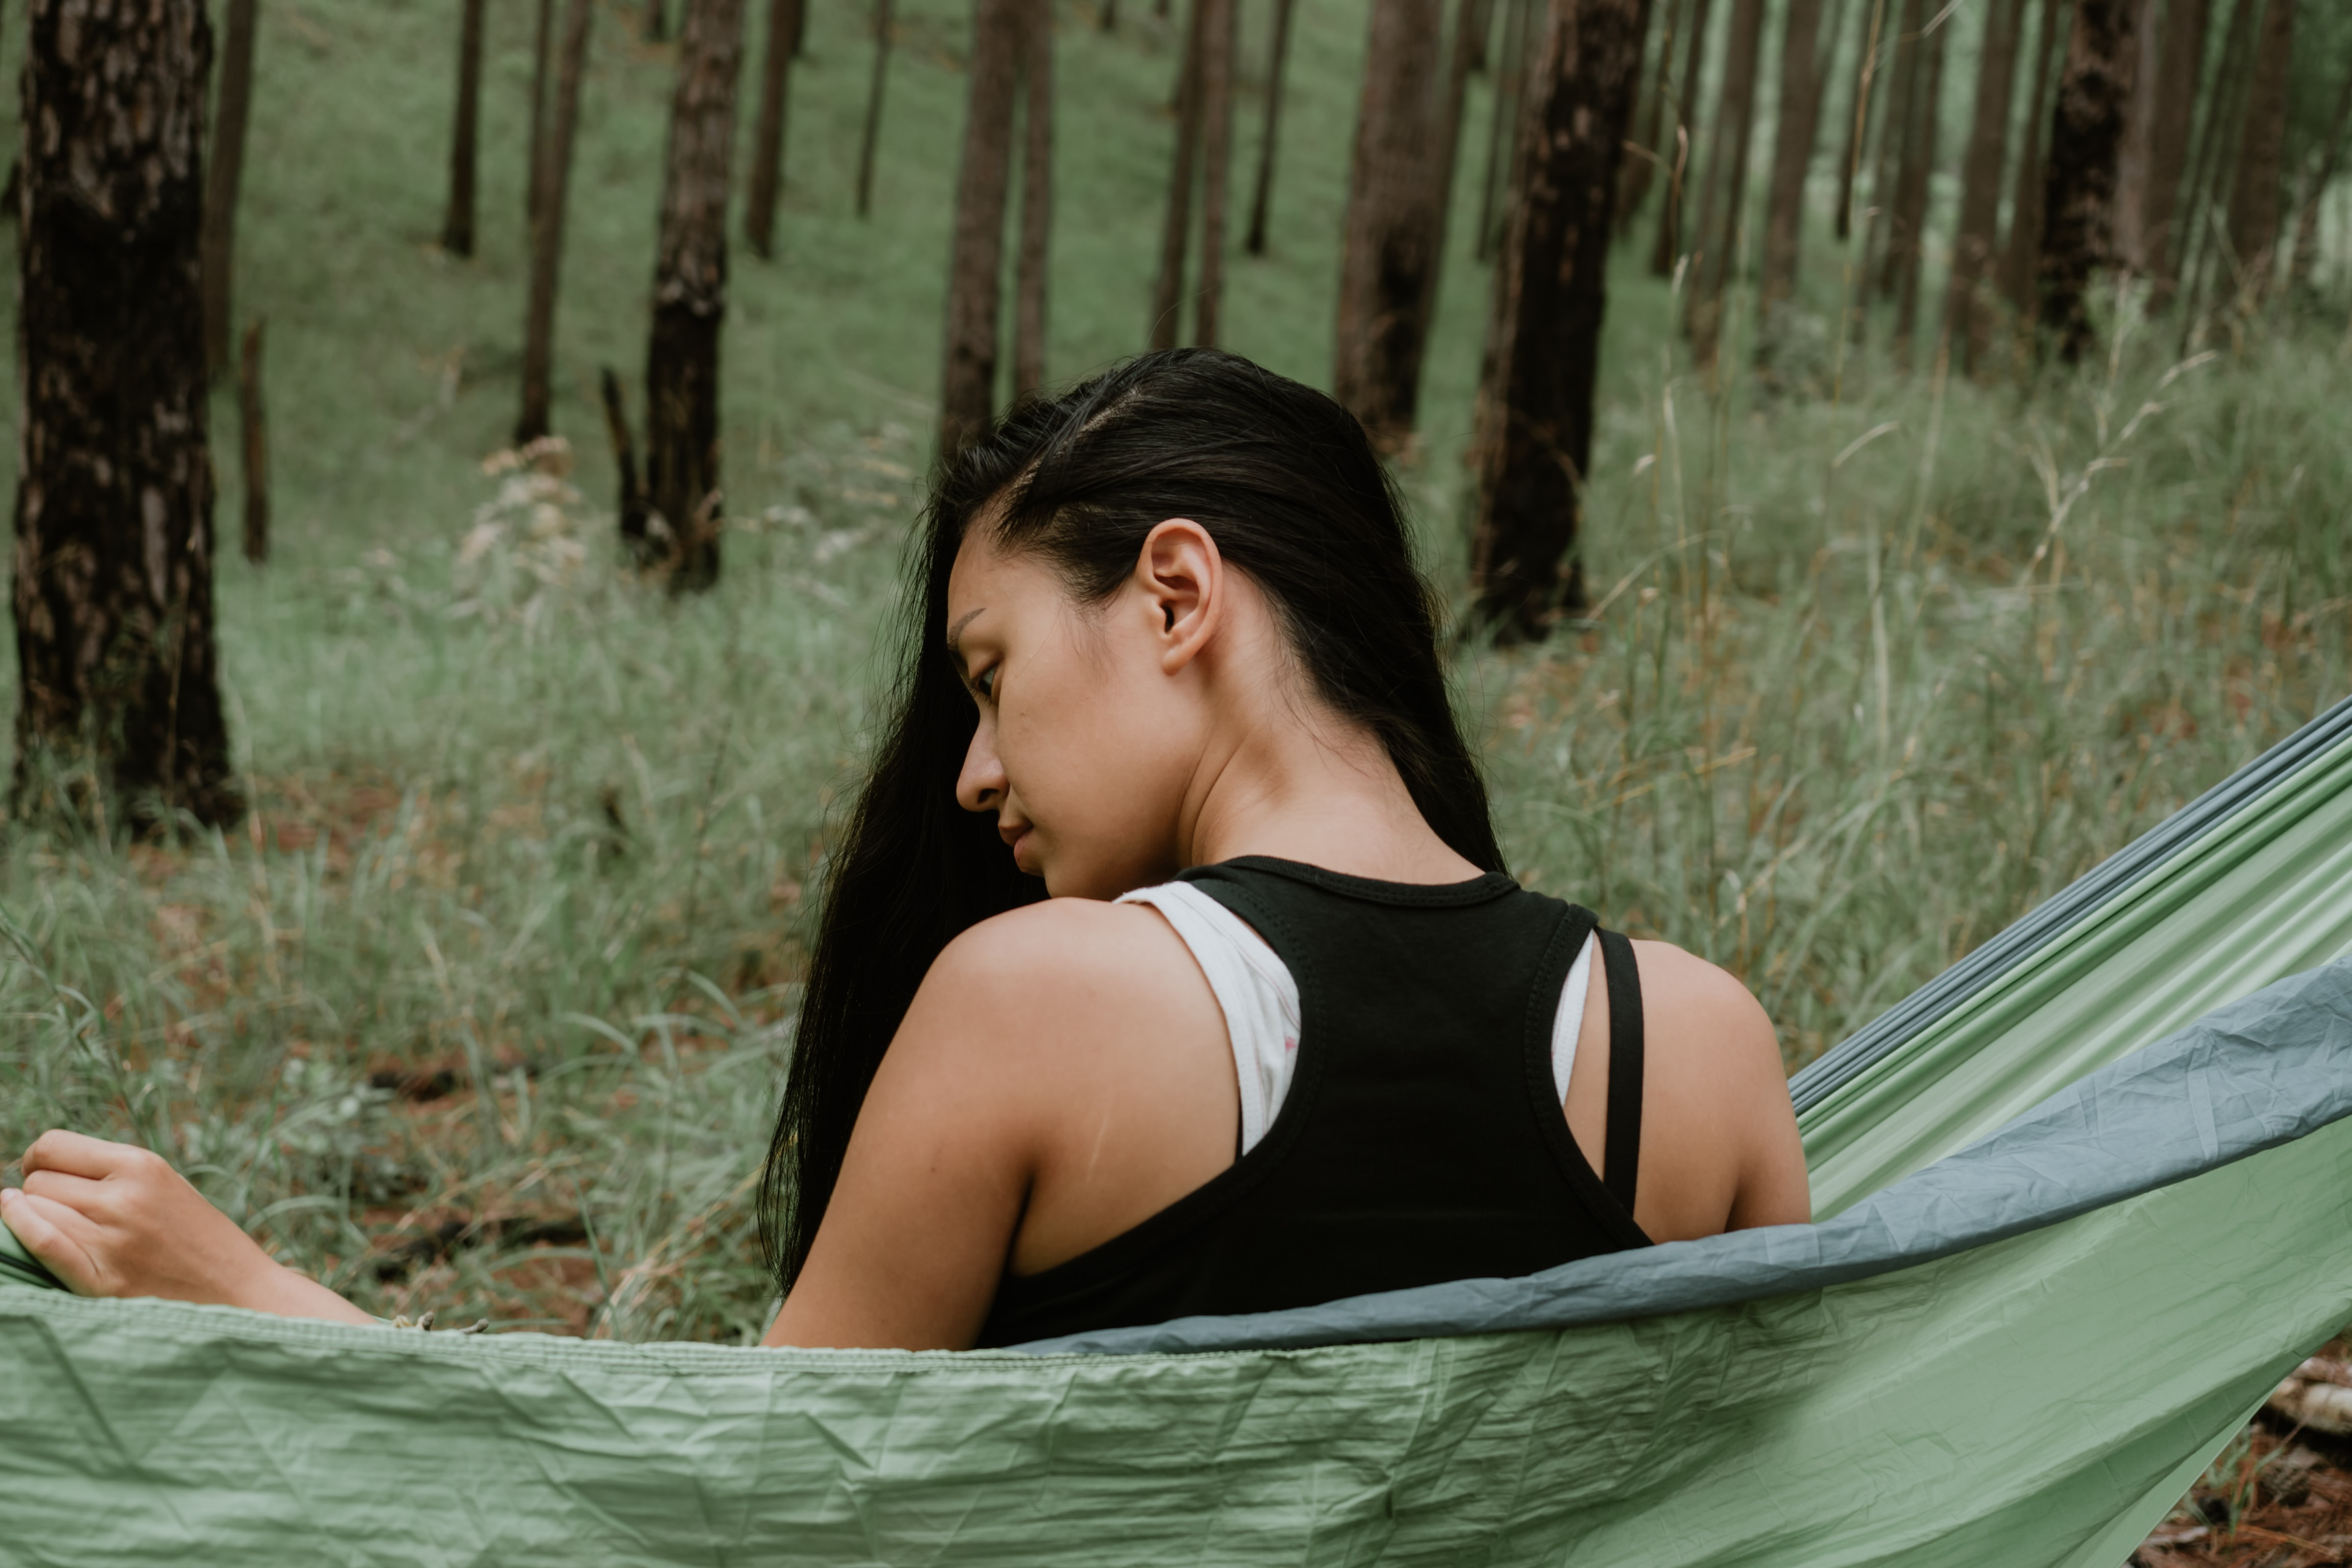 woman in black top sitting on green hammock